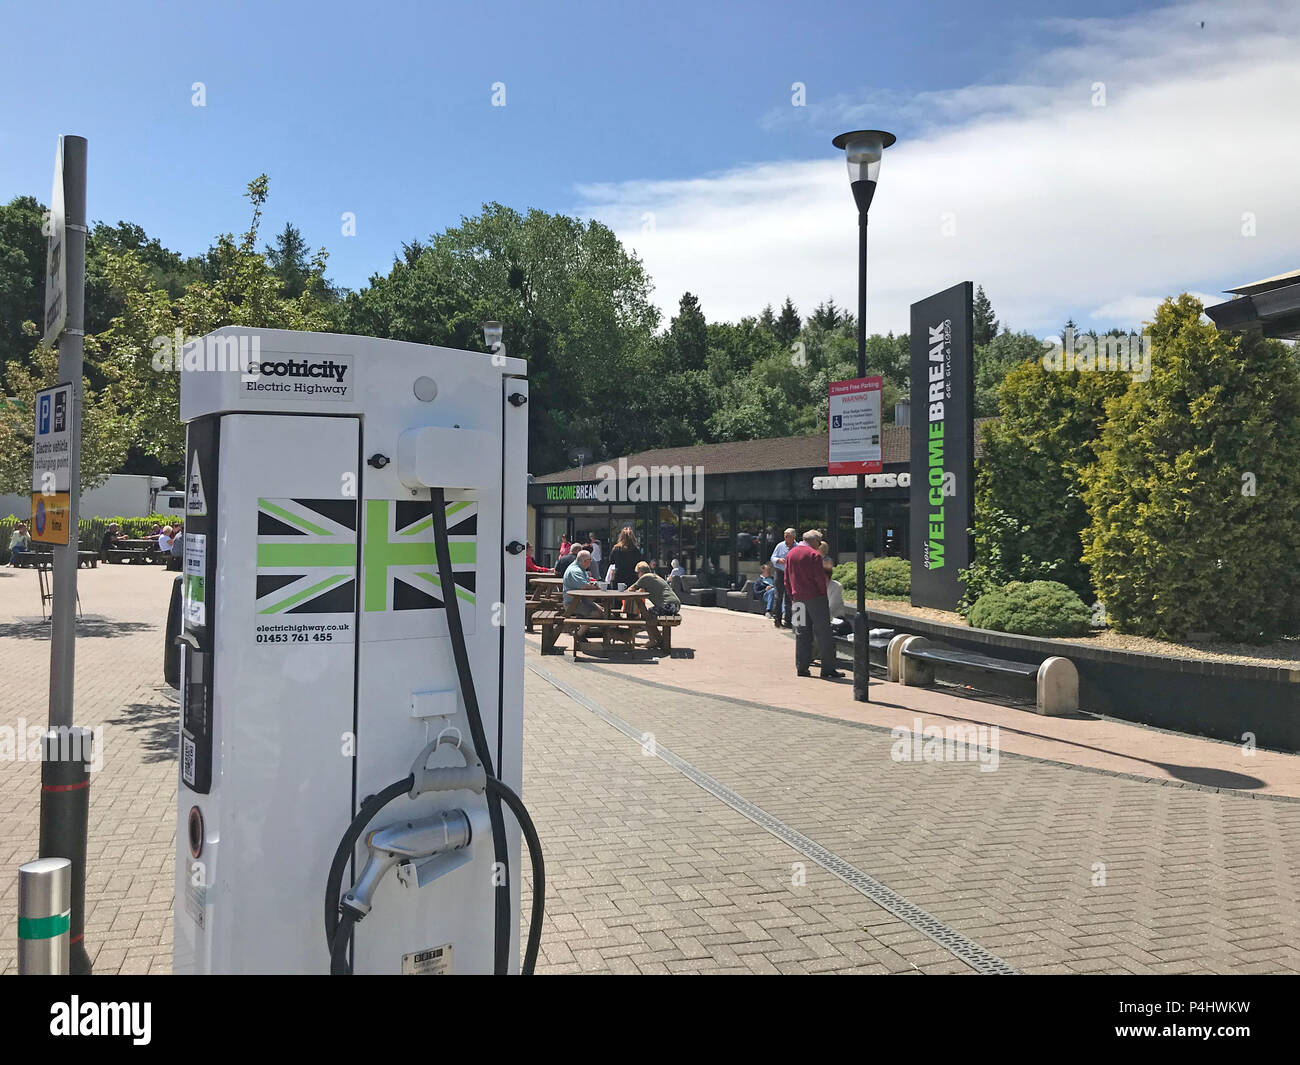 GoTonySmith,@HotpixUK,HotpixUK,services,Lower Wick,panorama,Gloucestershire,Motorway services,GL11 6DD,Dursley,Waitrose at Michaelwood Services,M5 services,M5 motorway,electric charging point,GL11